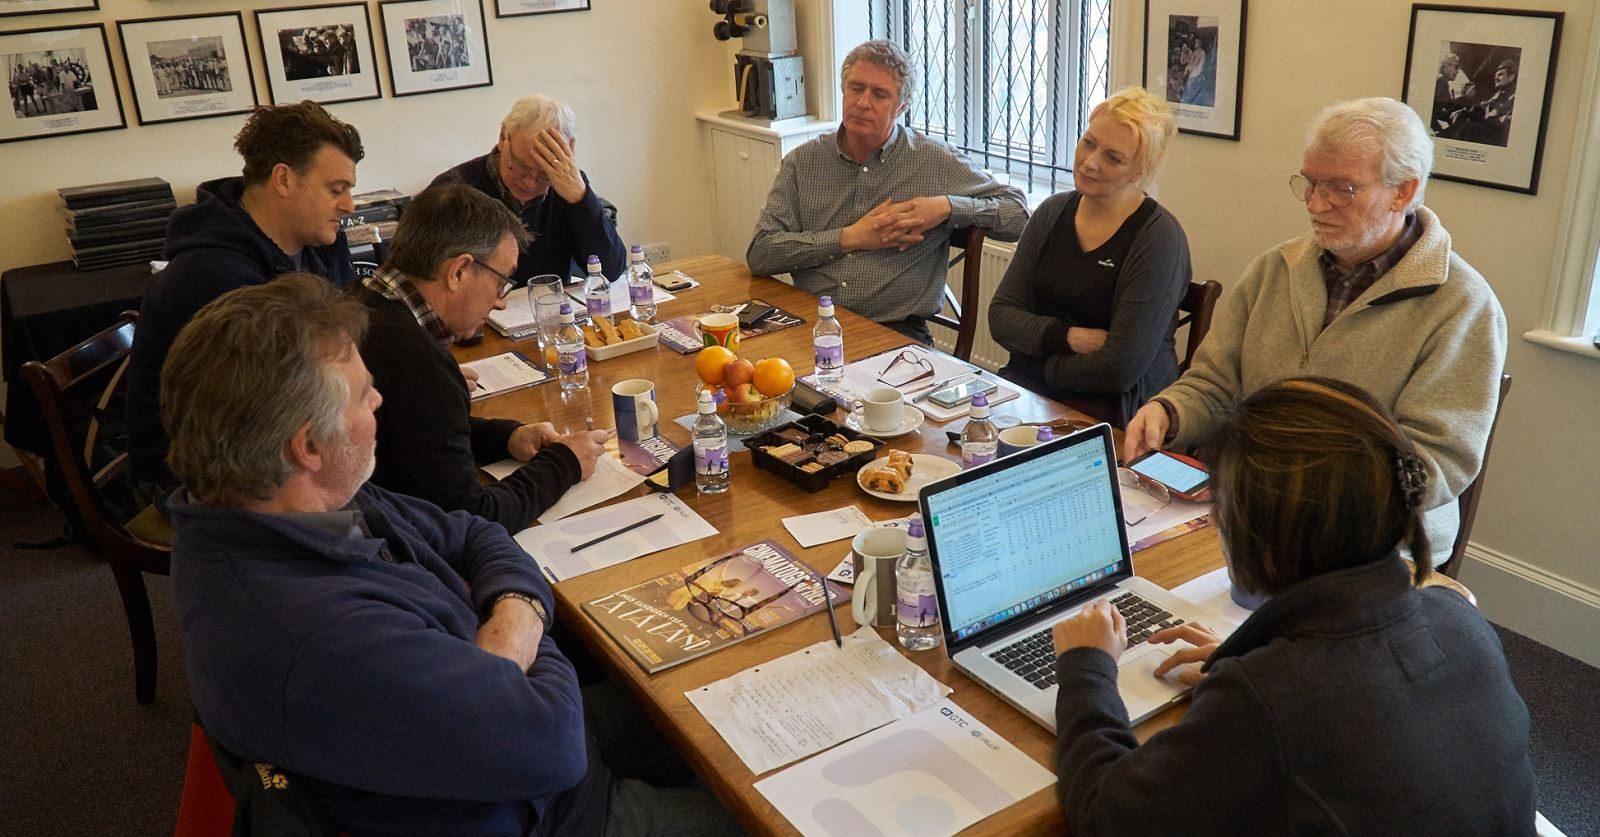 GTC Awards judges deliberating over the 2017 nominations – with thanks to Max Hodgetts for the great photos